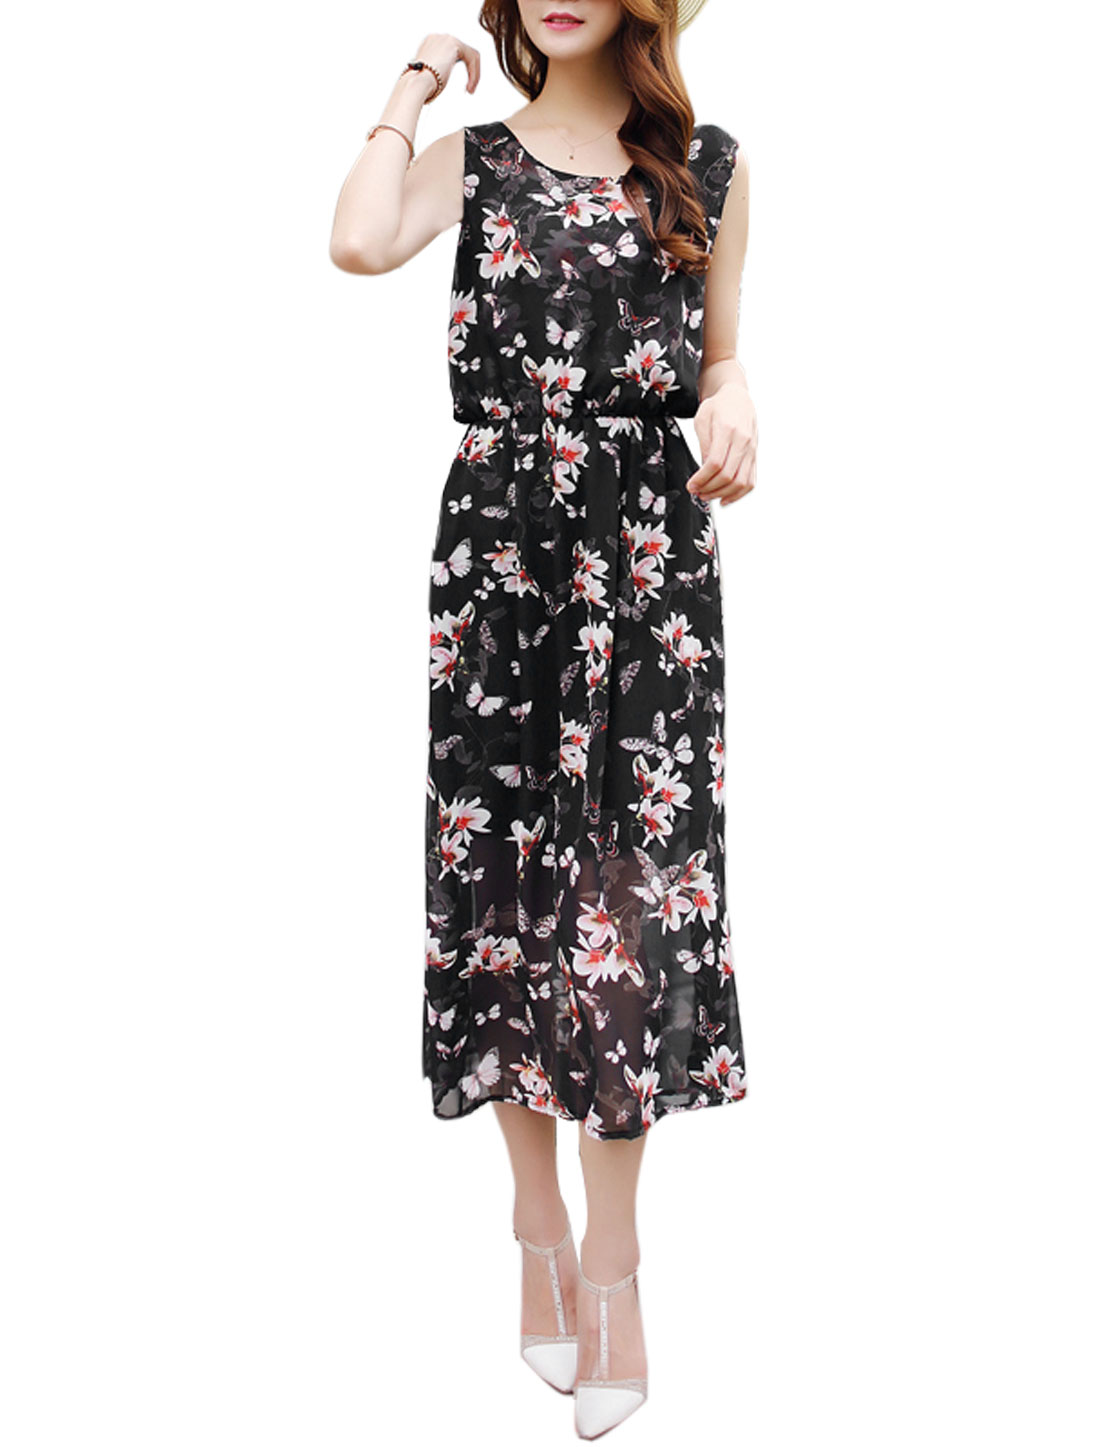 Ladies Sleeveless Floral Print Fully Lined Dress Black Fuchsia M